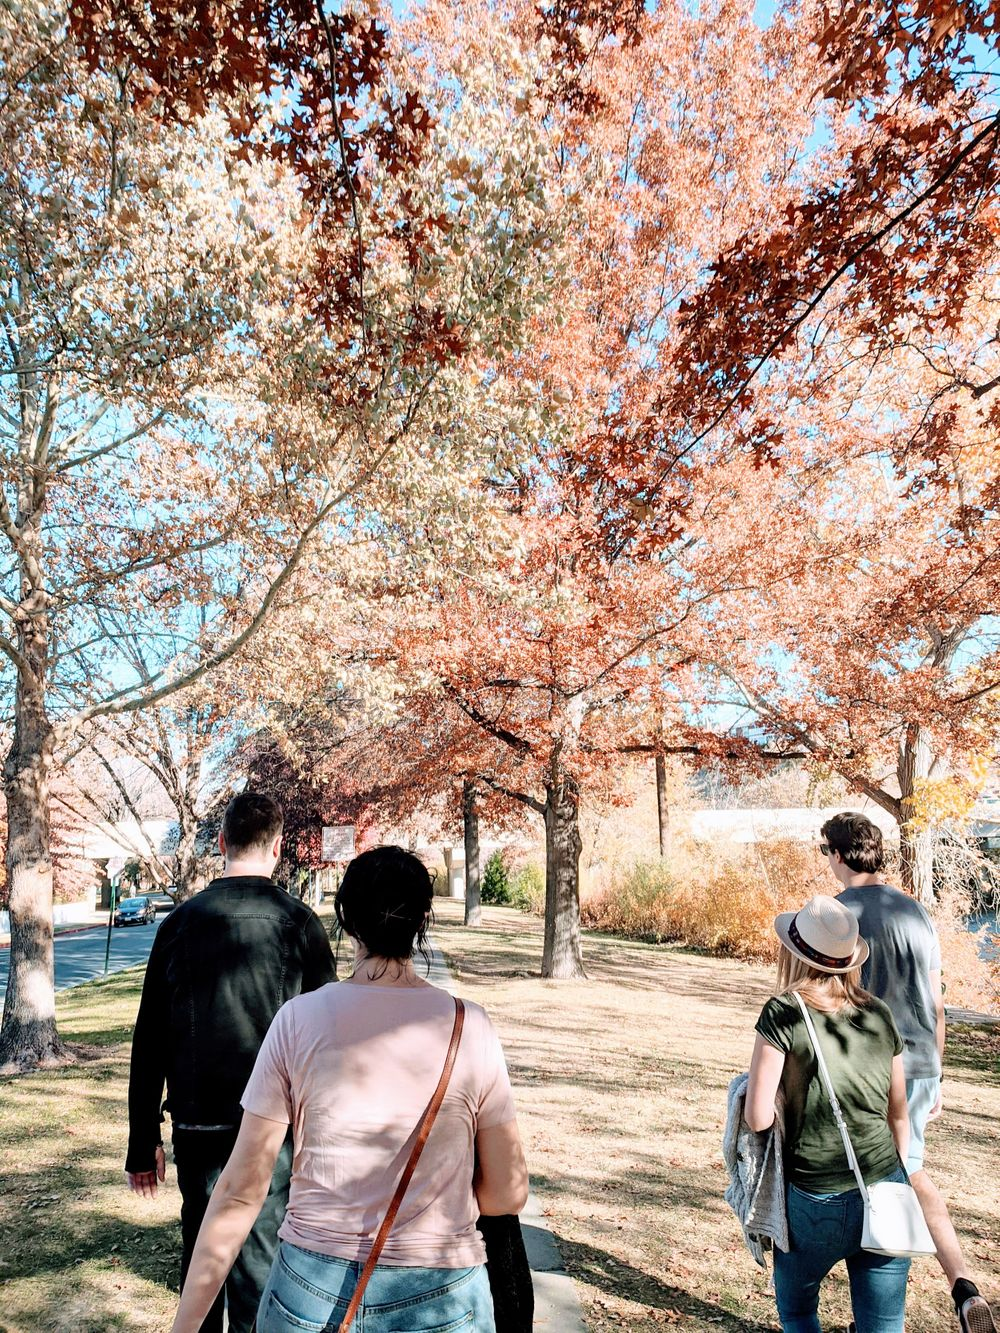 Group of young adults from behind walking along a road filled with Fall-colored trees